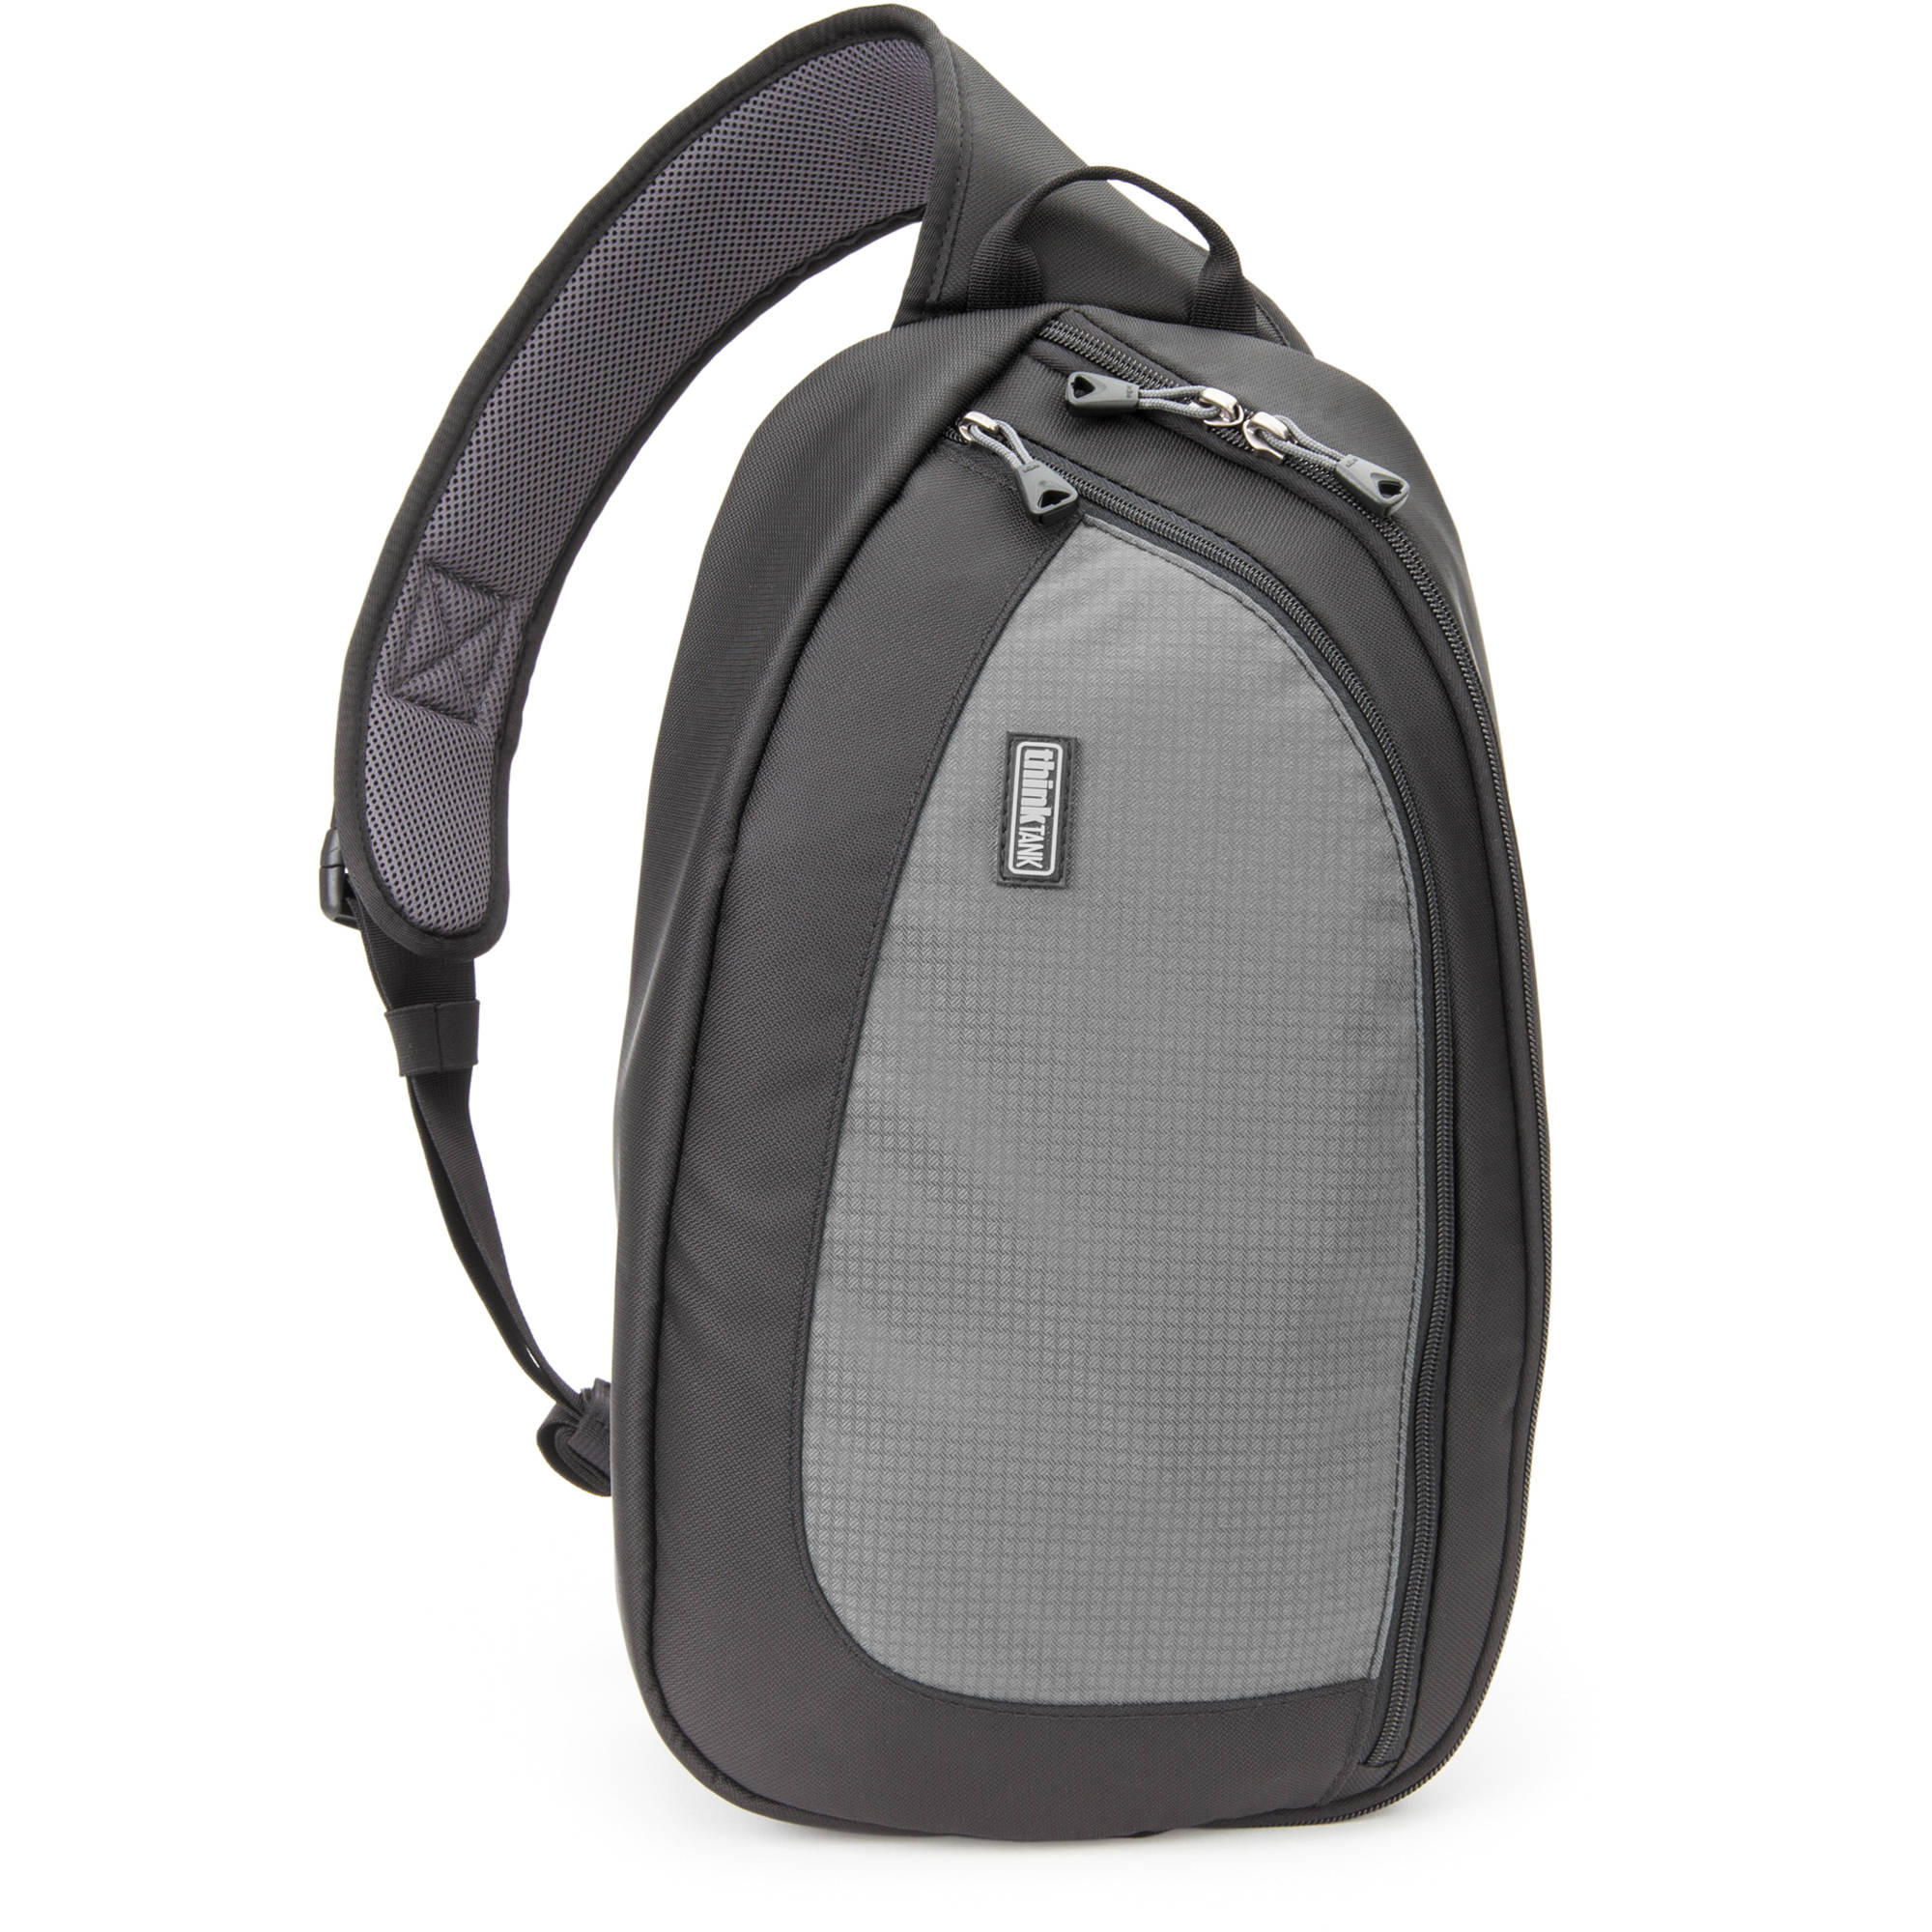 Think Tank Photo TurnStyle 20 Sling Camera Bag V1 (Charcoal) 465